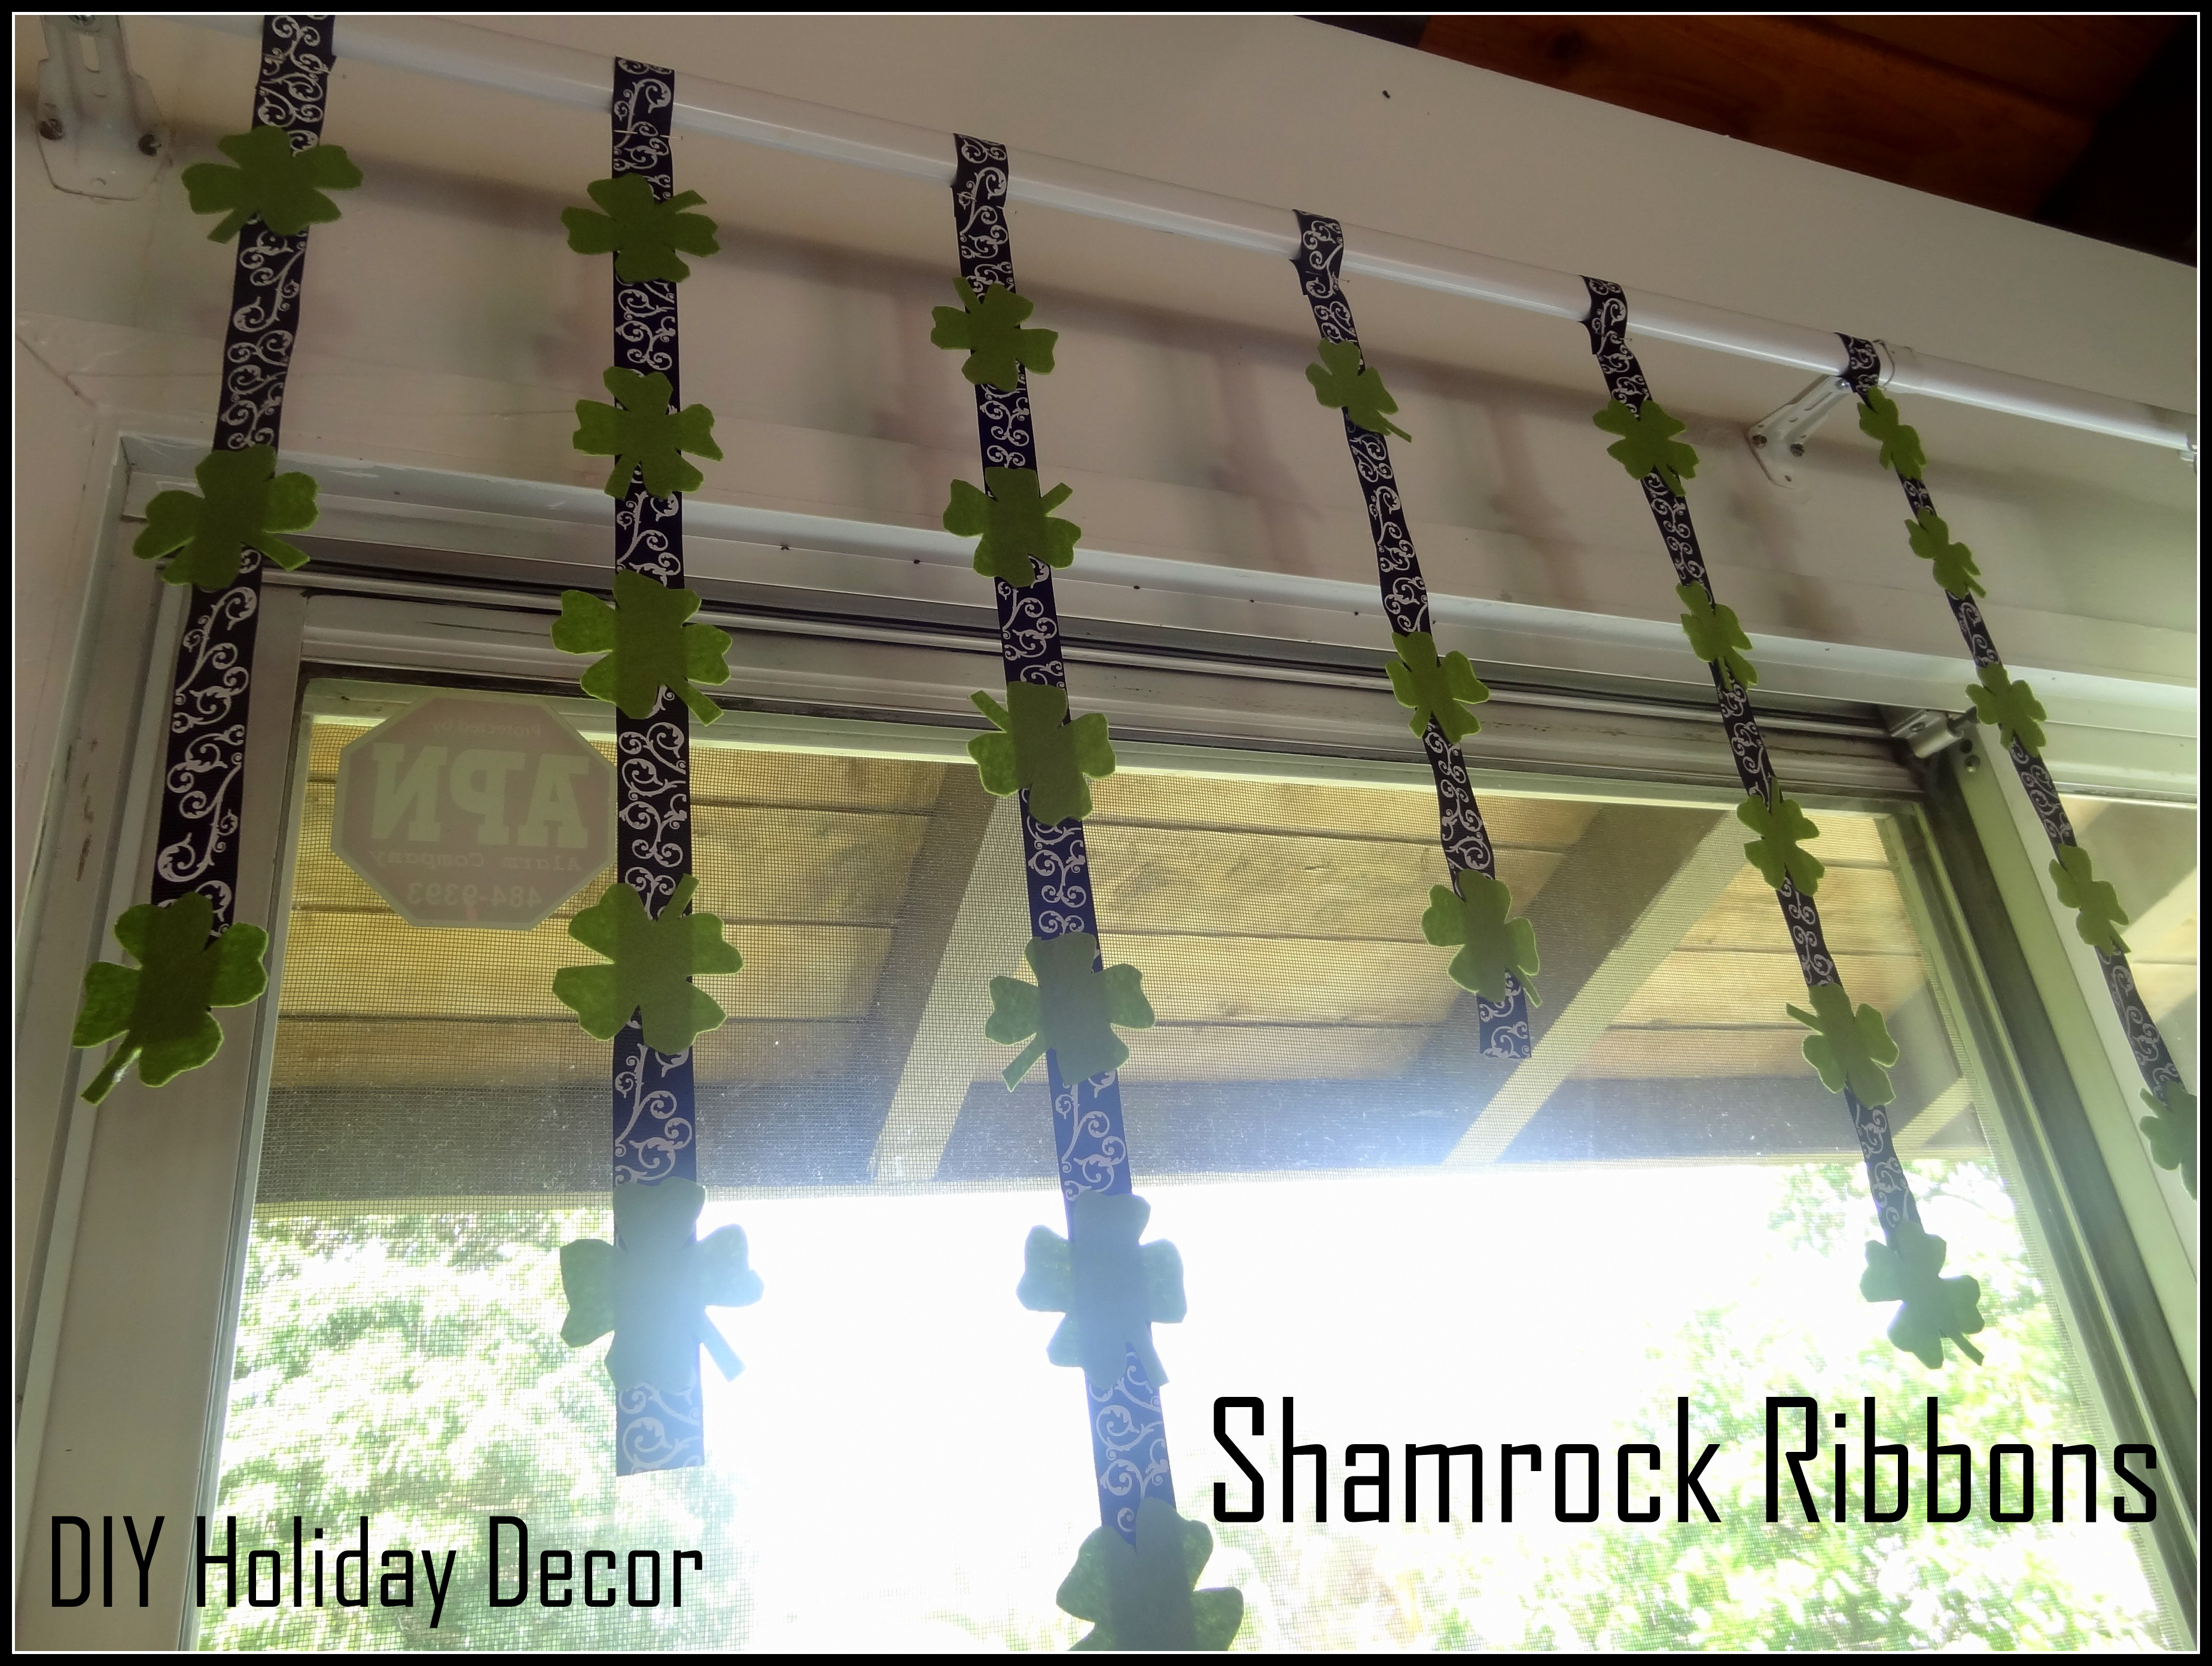 Shamrock Ribbons – Bring HOME the Luck of the Irish